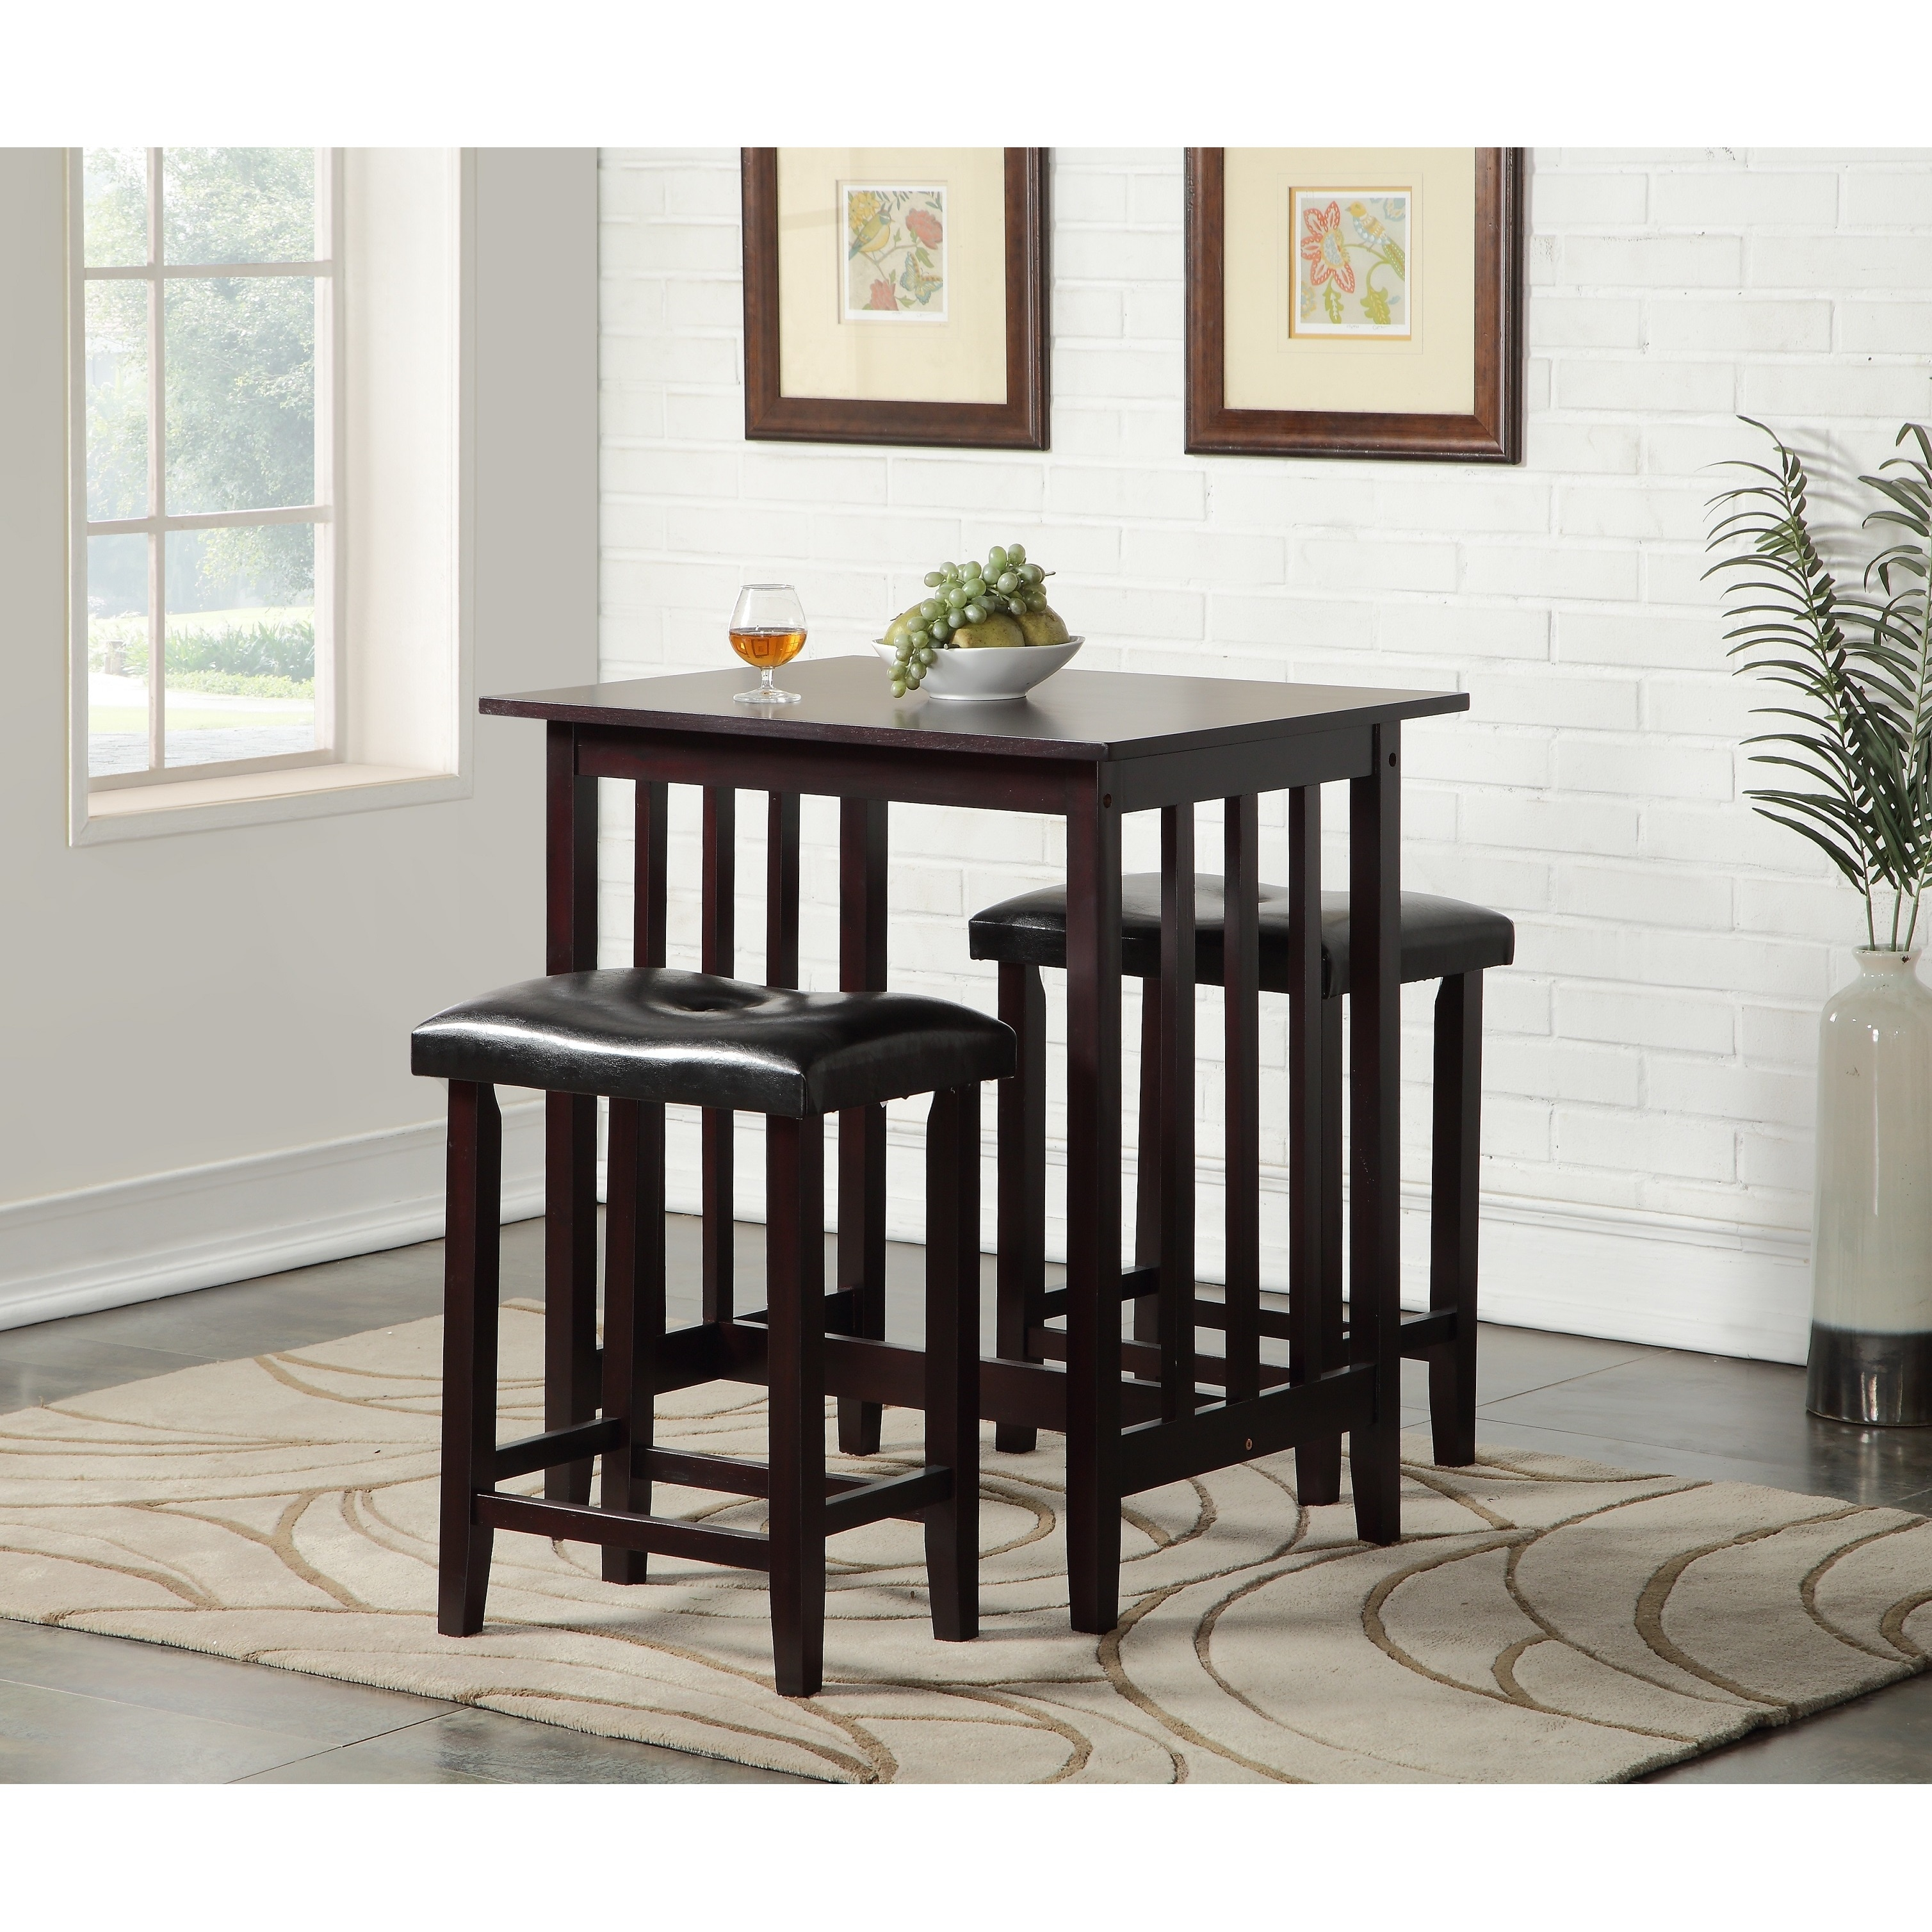 3 Piece Counter Height Dining Set with Saddleback Stools ...